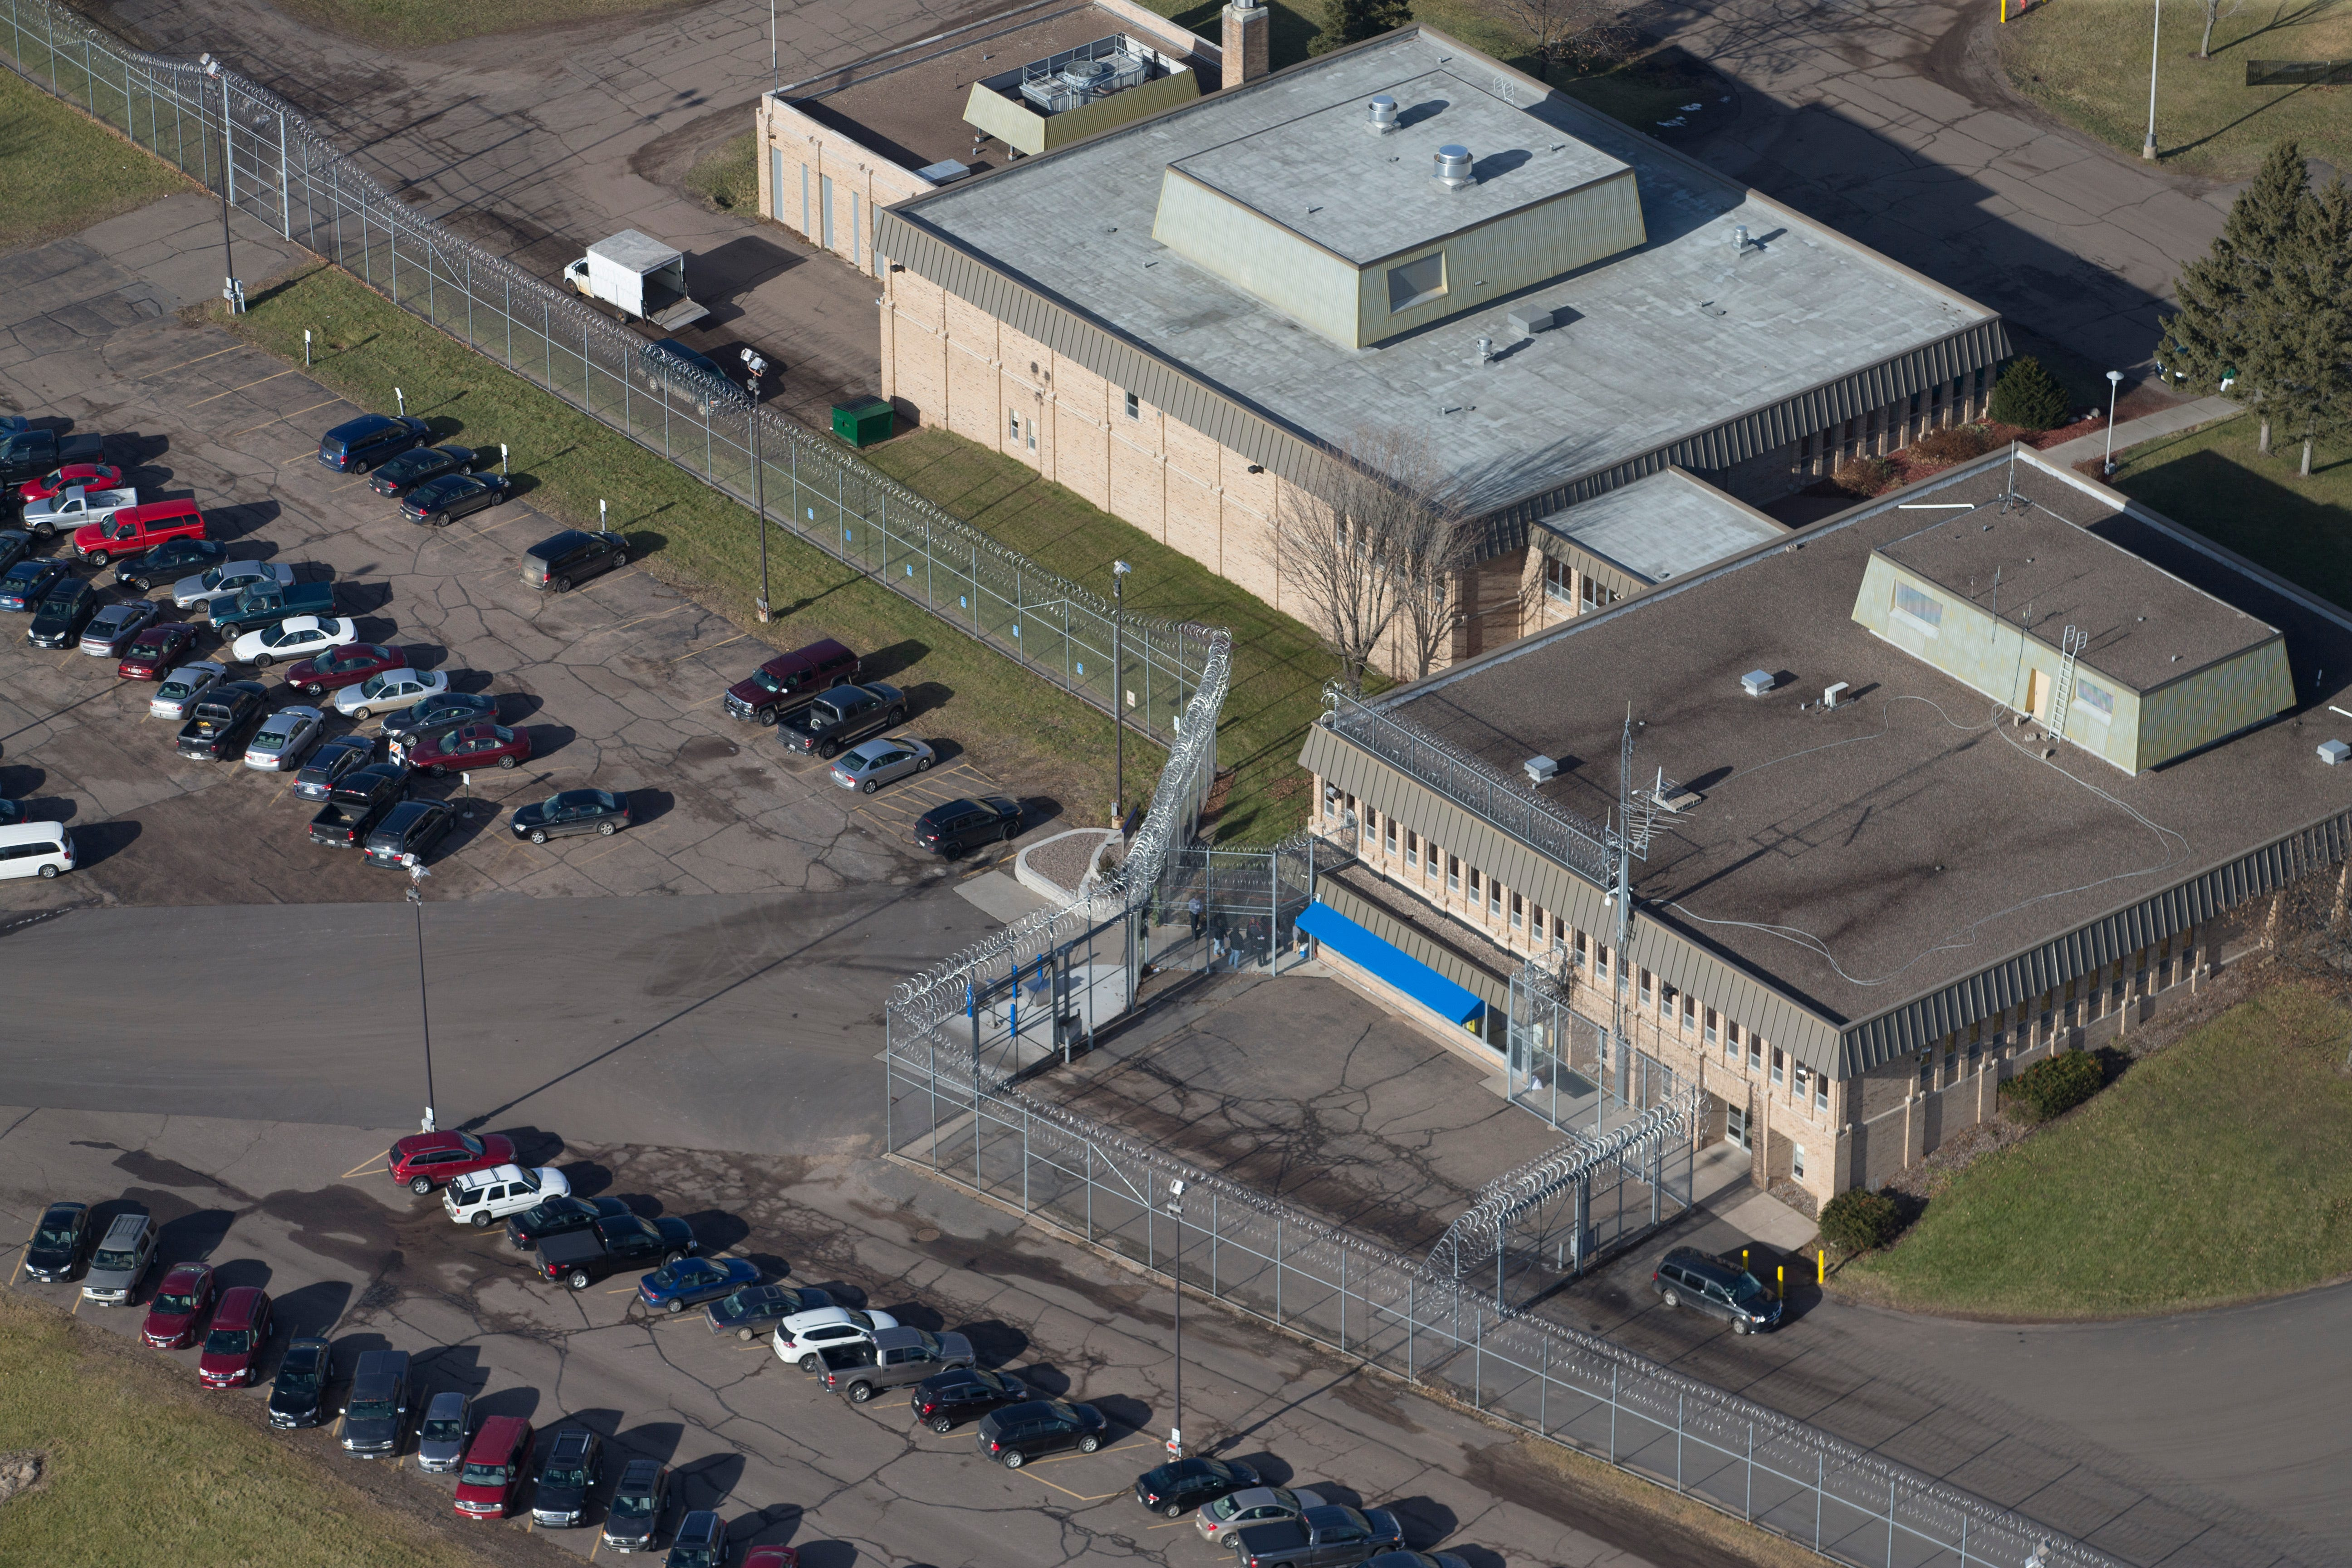 Judge: 'Ted Kaczynski has less restrictive confinement' than Lincoln Hills teen inmates